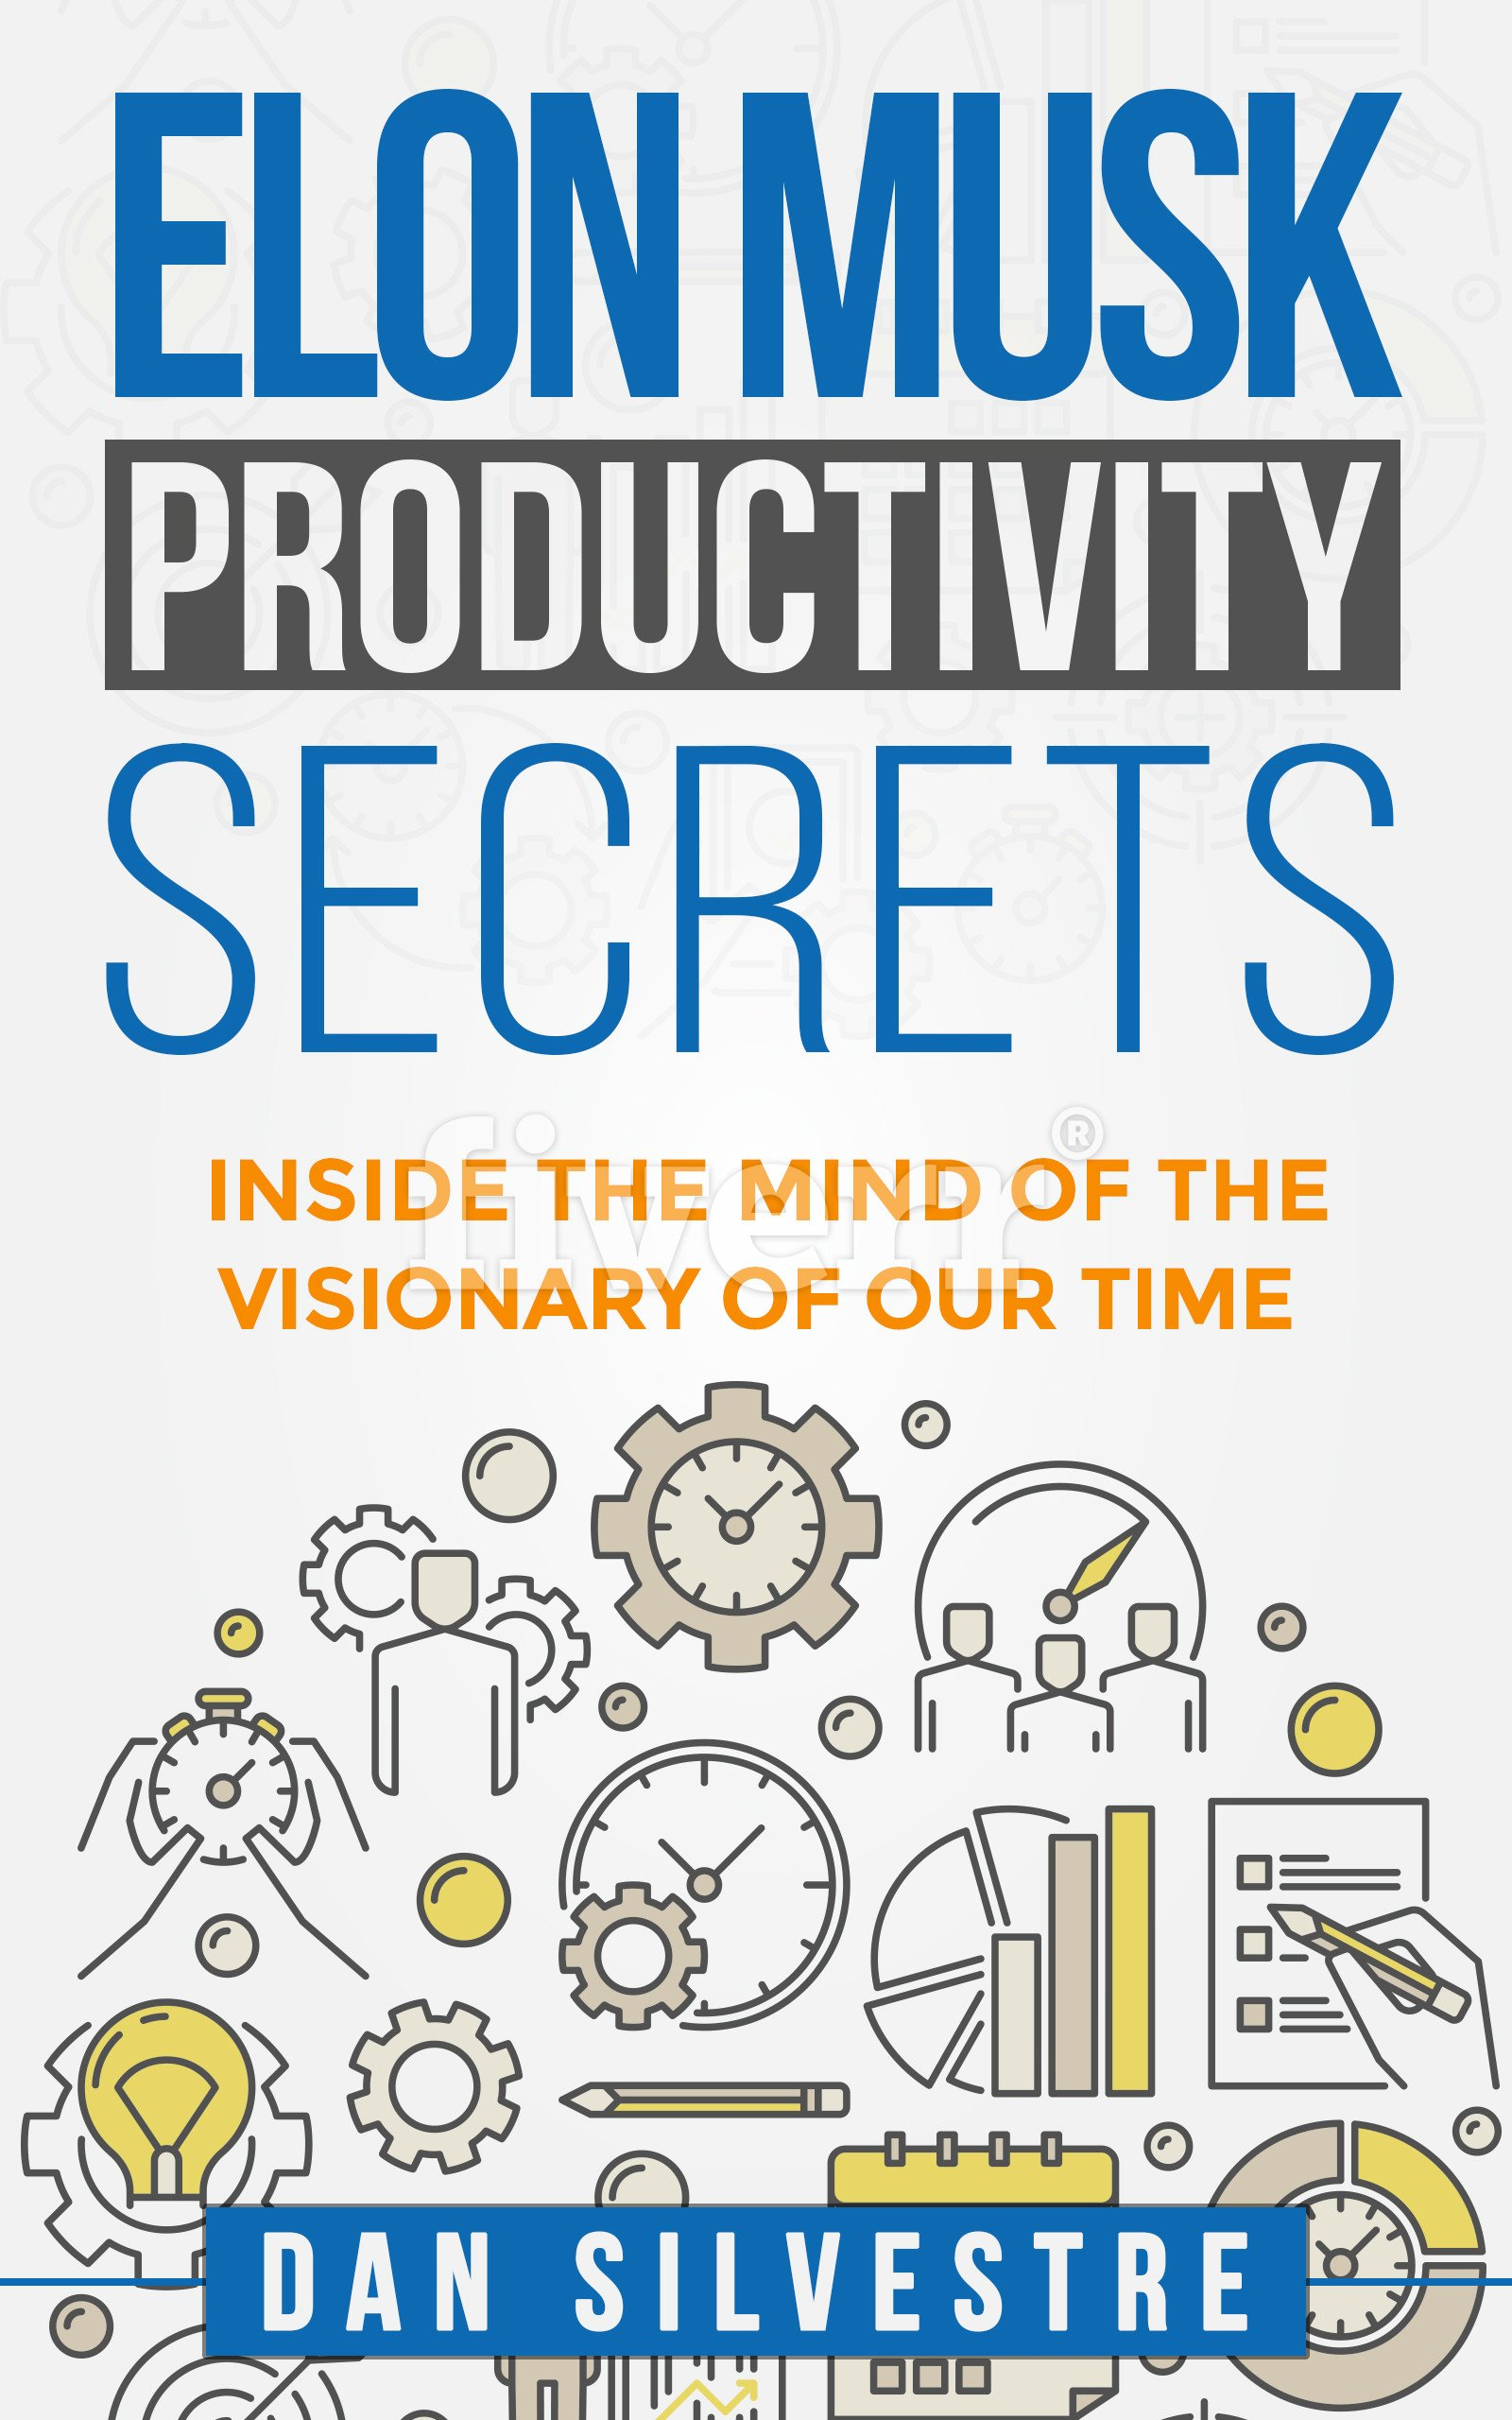 Elon Musk Productivity Secrets: Inside the Mind of the Visionary of Our Time